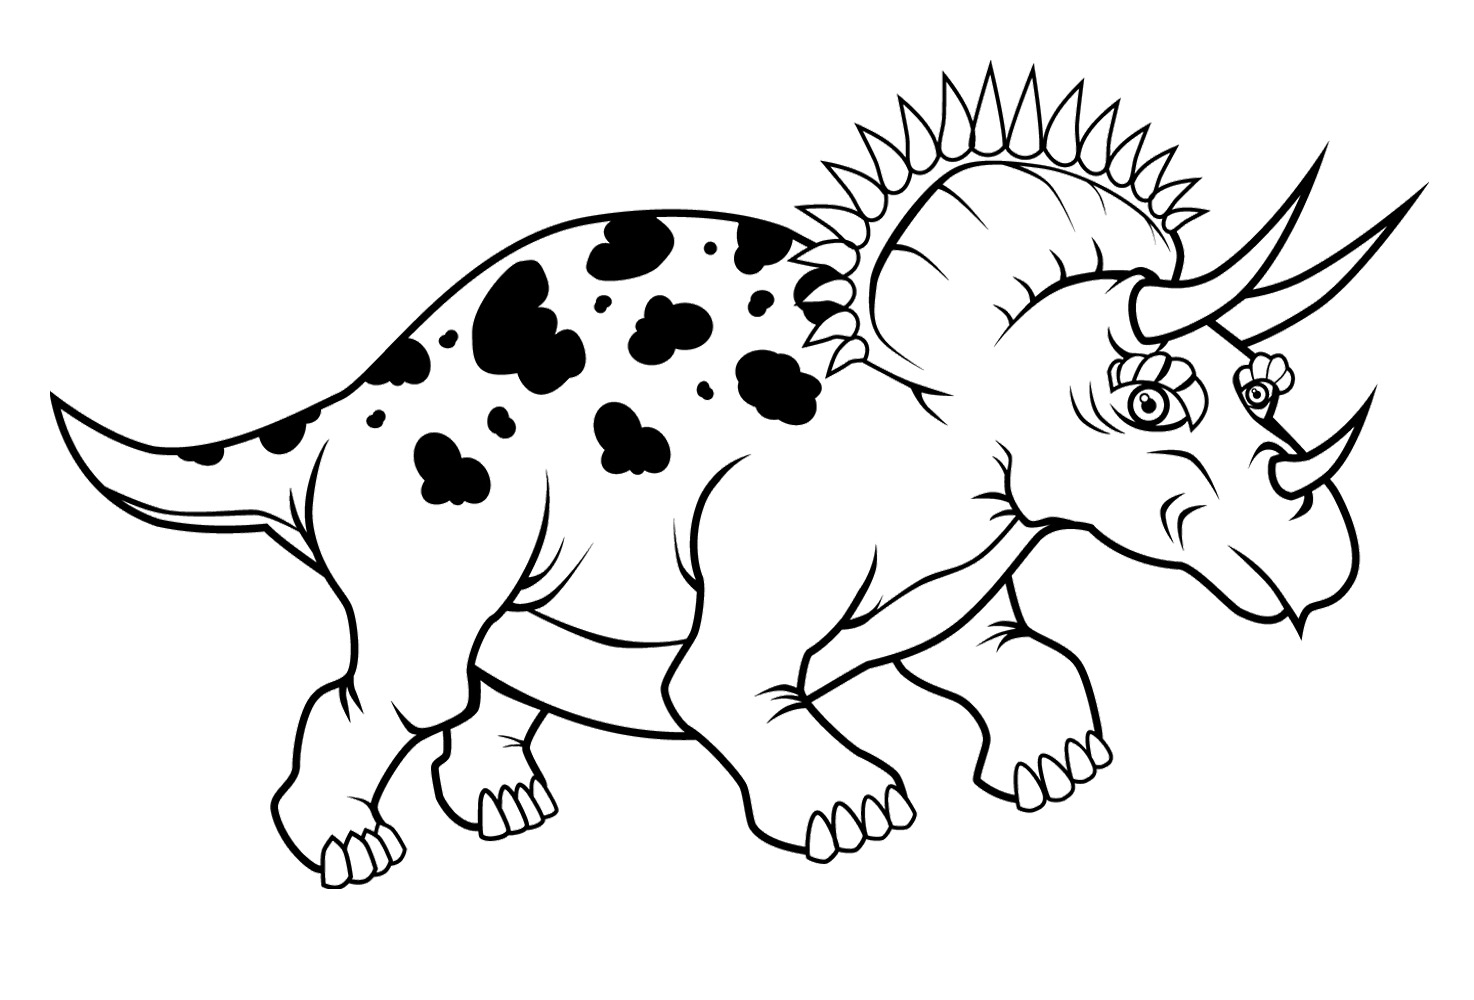 1474x1000 Triceratops Dinosaur Coloring Page Dinosaur Coloring Pages Kids